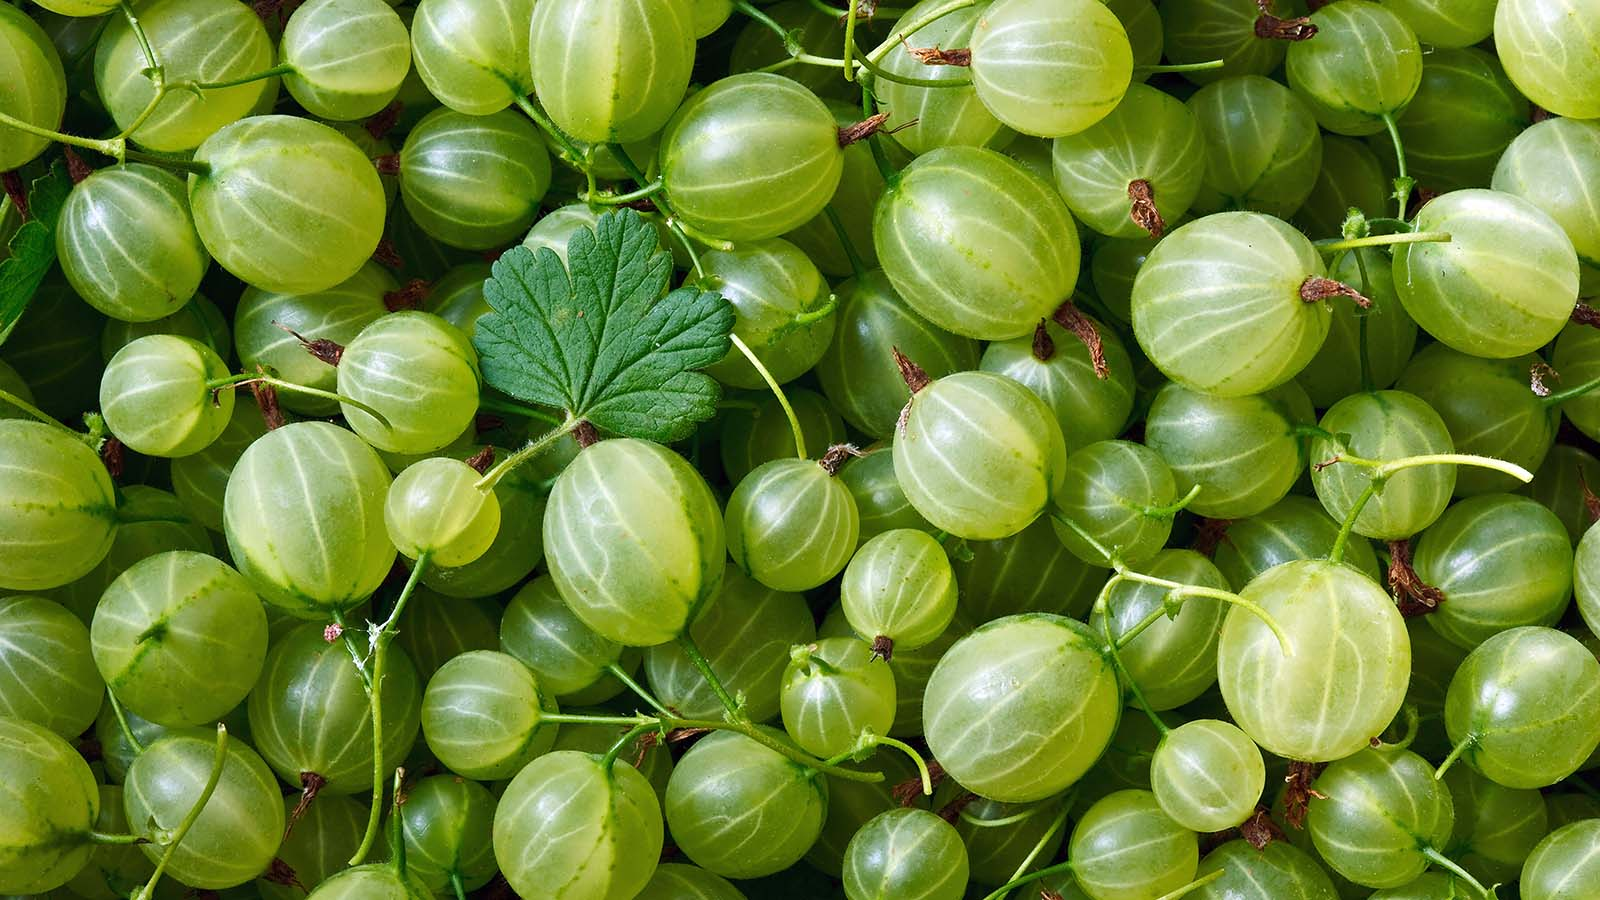 The Once-banned Gooseberry Has Made a Comeback in the U.S.